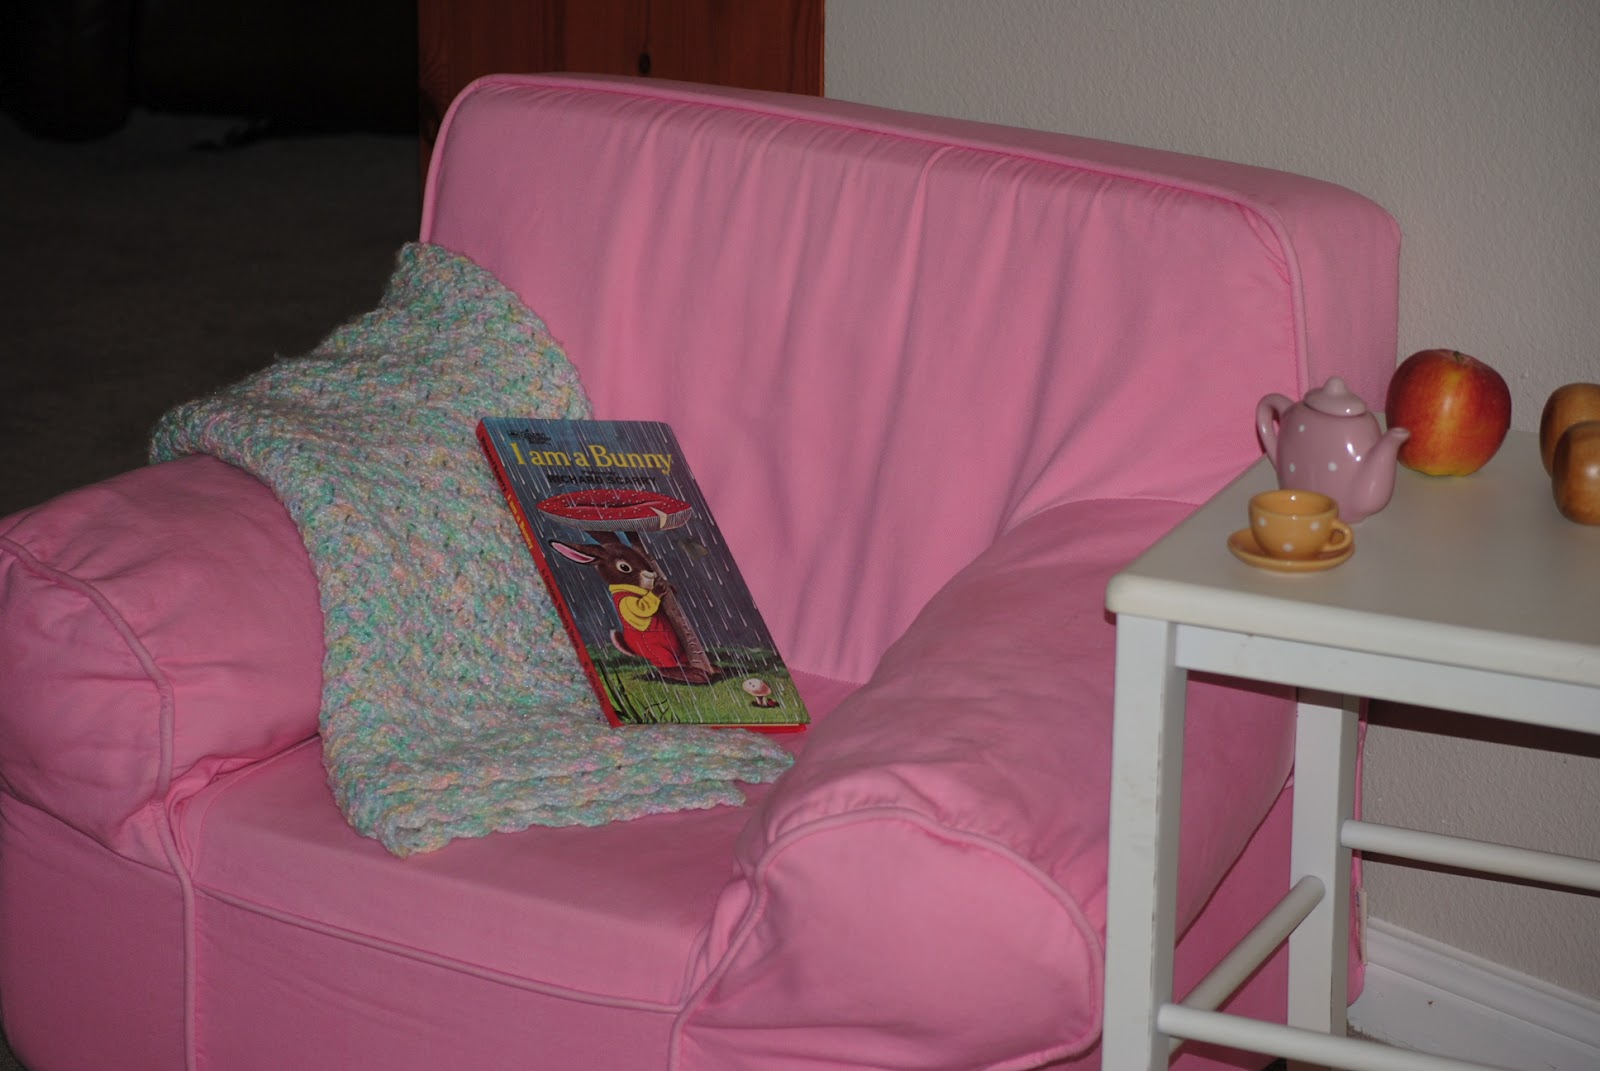 pottery barn kids chair cover. Black Bedroom Furniture Sets. Home Design Ideas